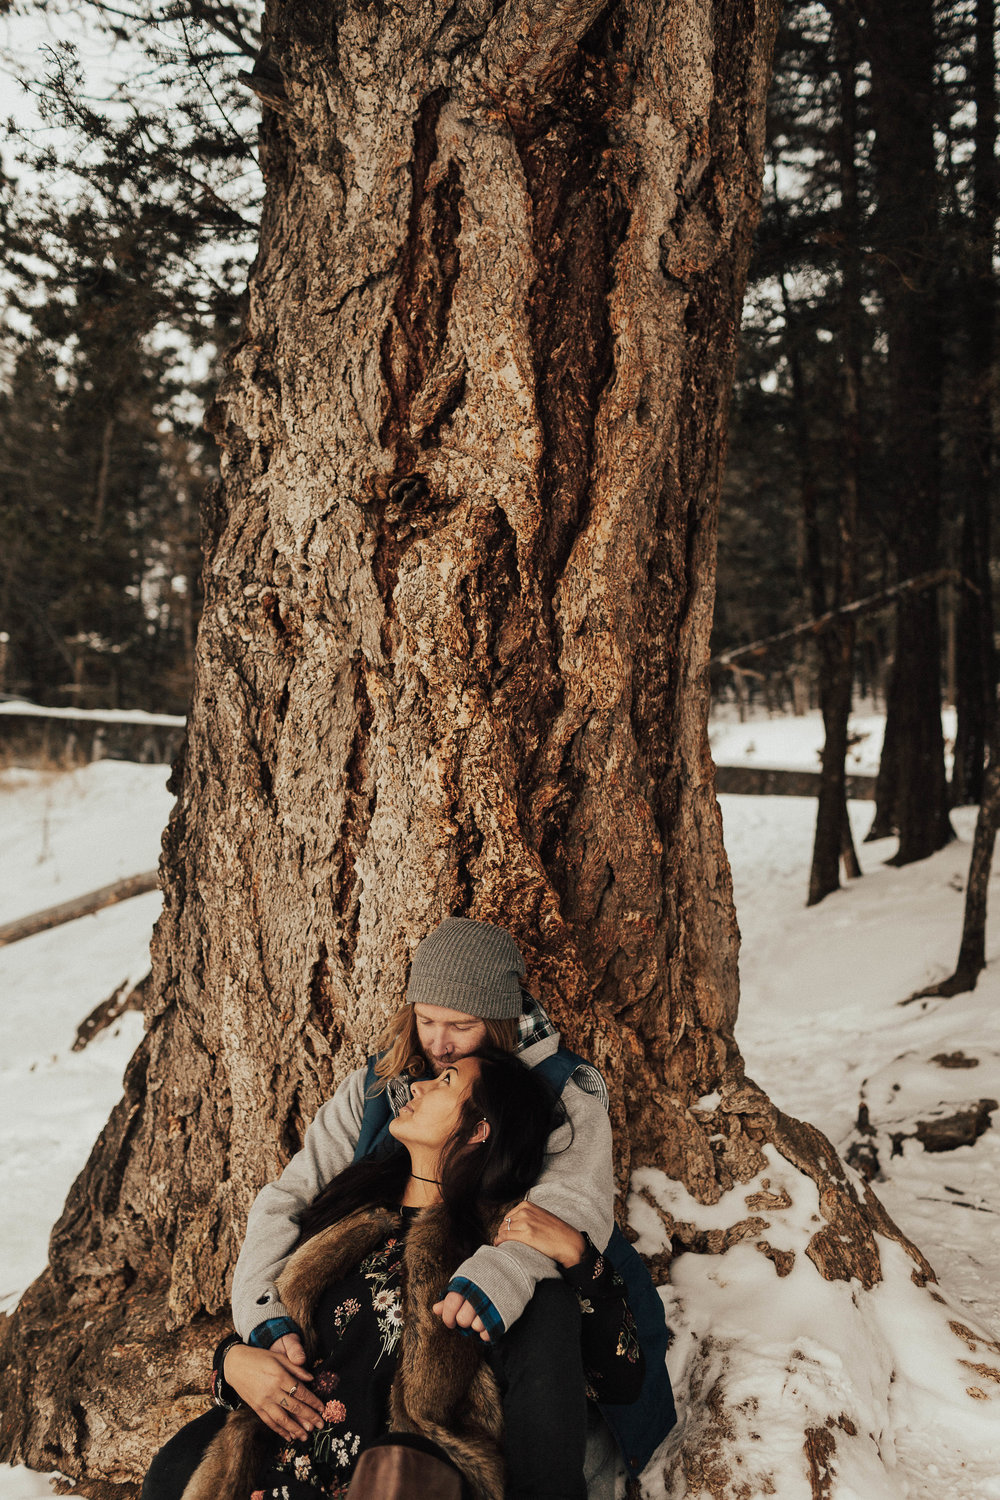 Banff Engagement Photographer - Winter Mountain Adventure Engagement Session - Michelle Larmand Photography-063